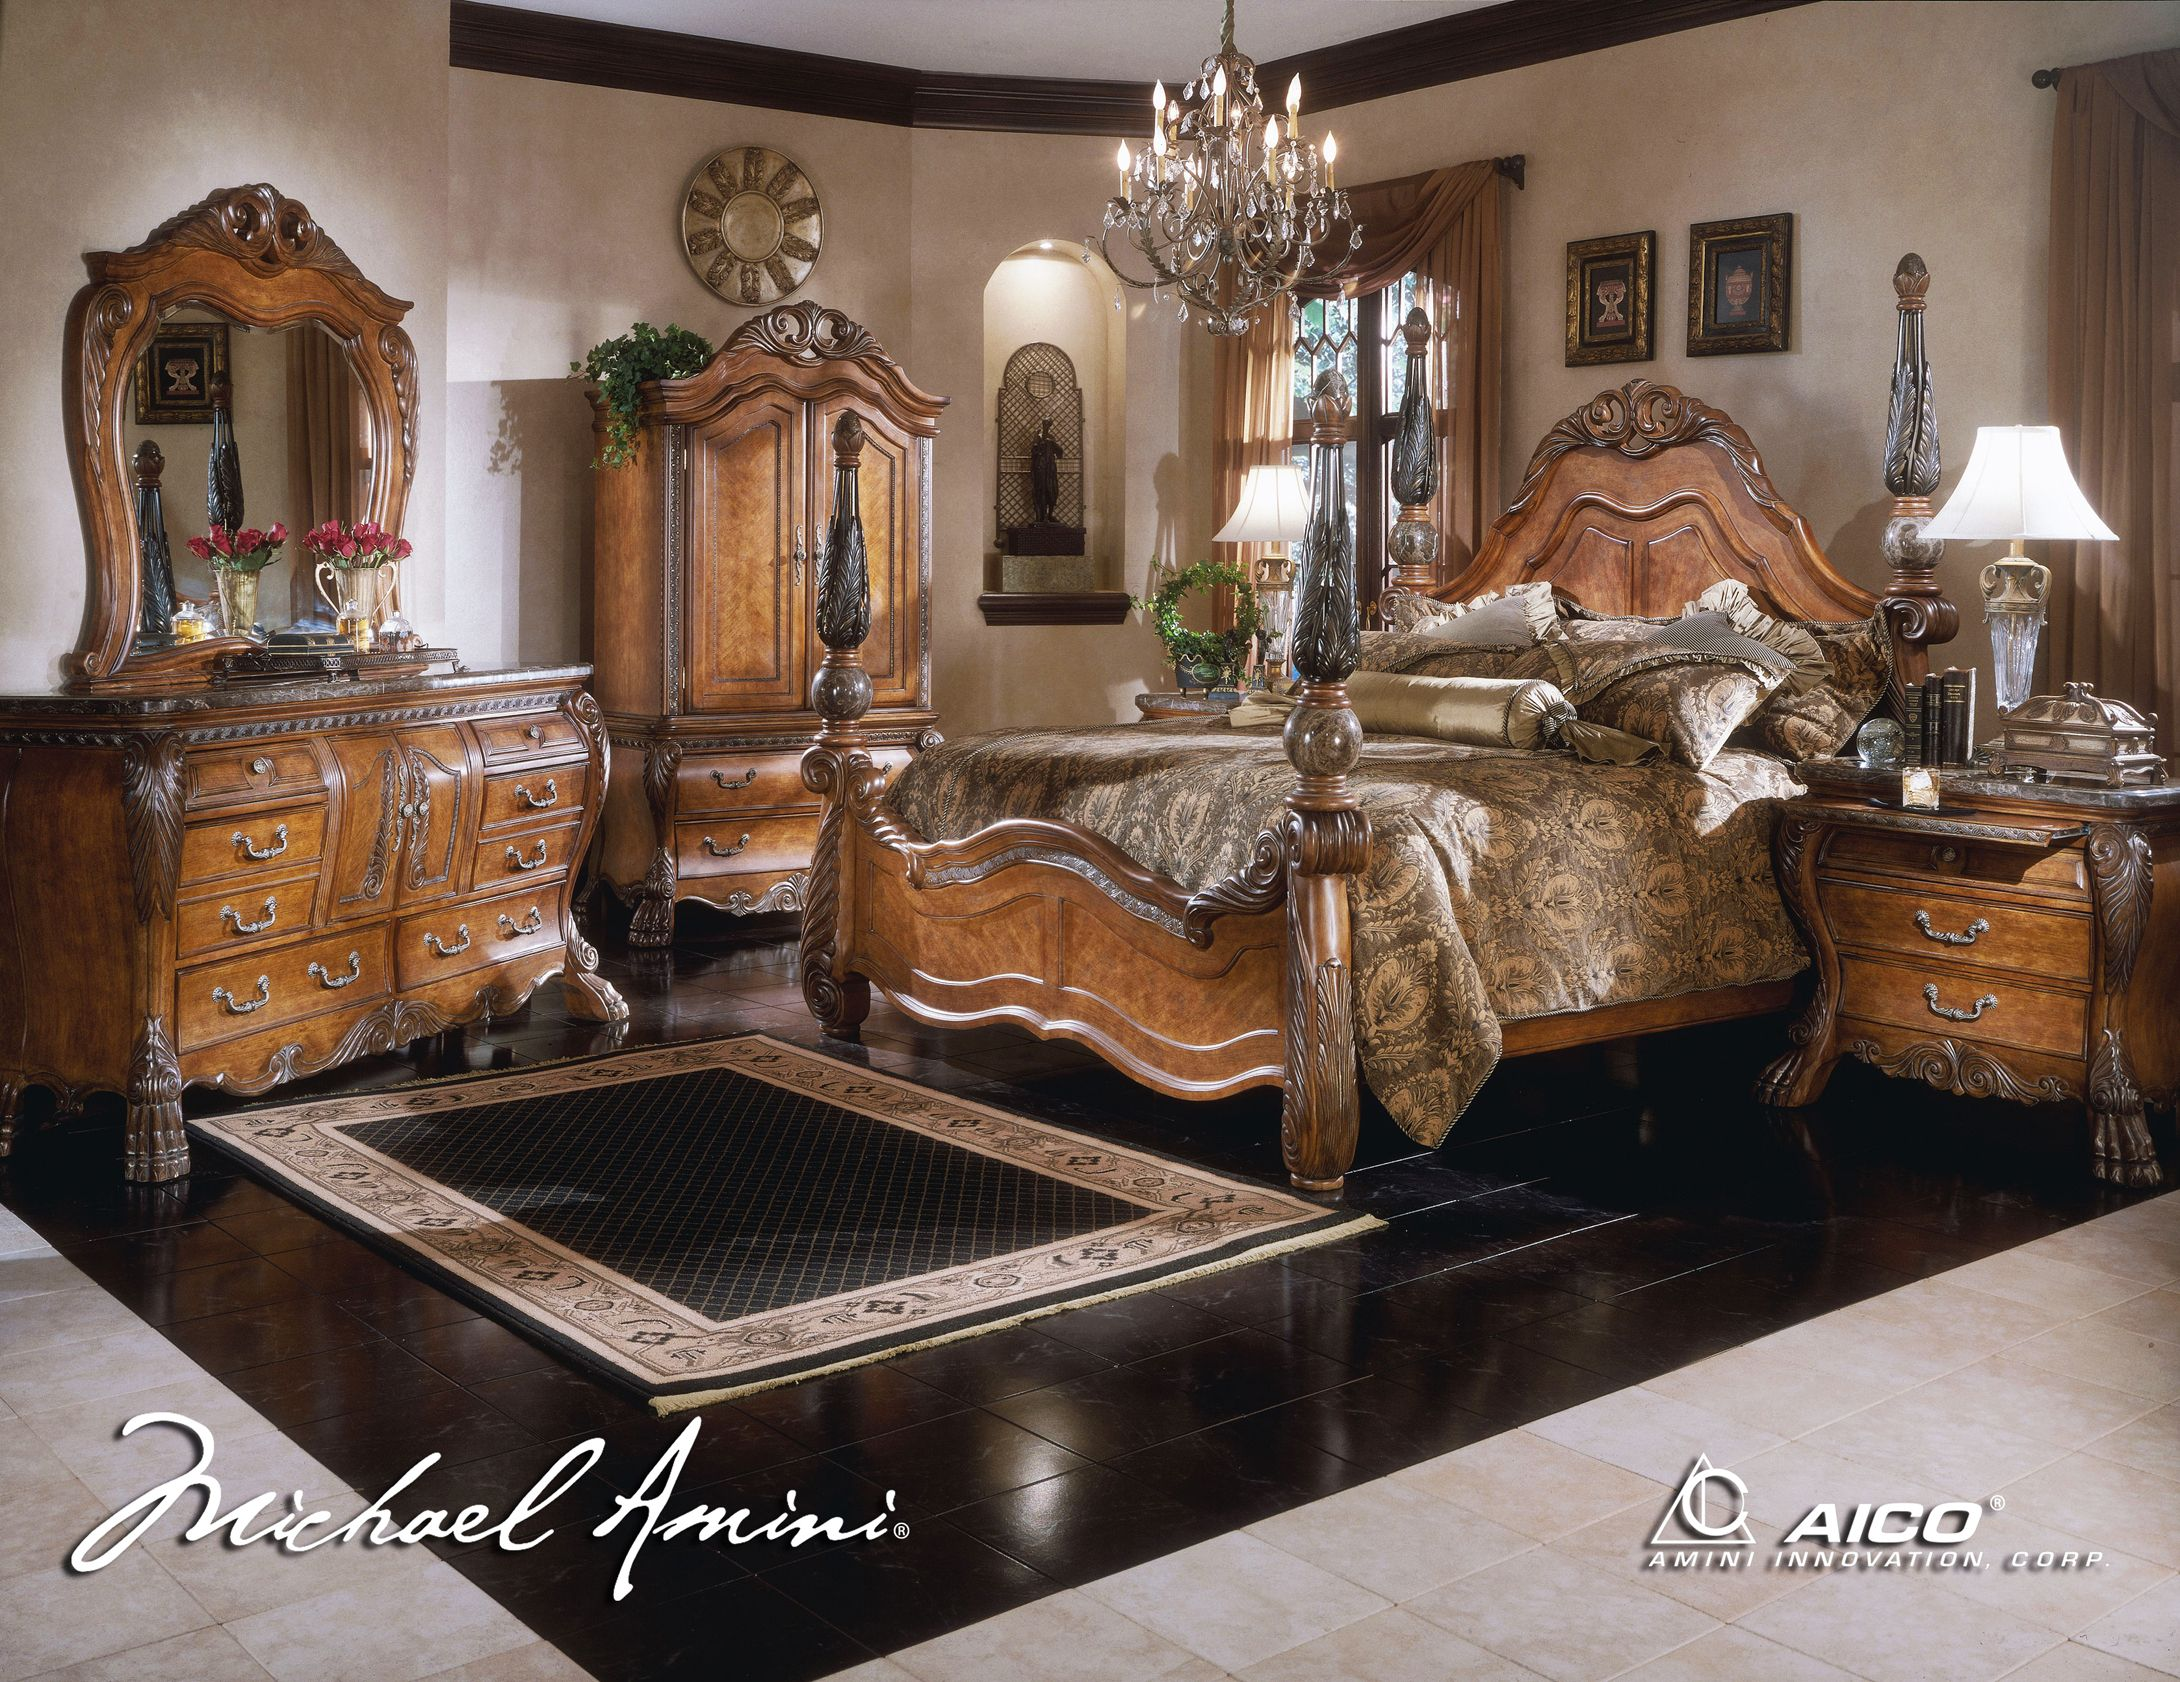 Exceptional Four Poster Bedroom Sets | ... Poster Bedroom Set In Amaretto Finish  2180x1682 King